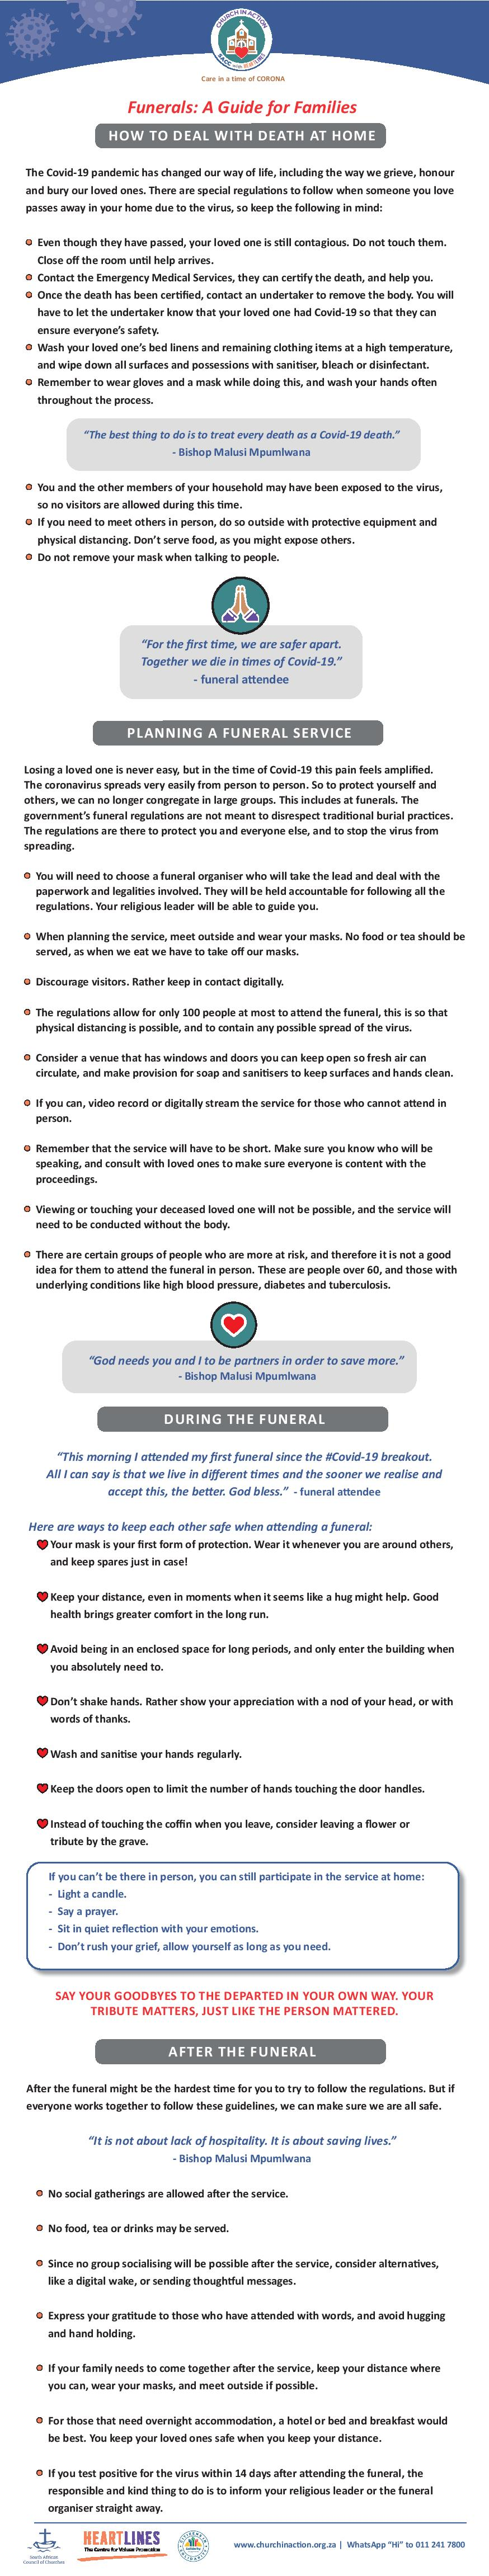 Funerals: A guide for families